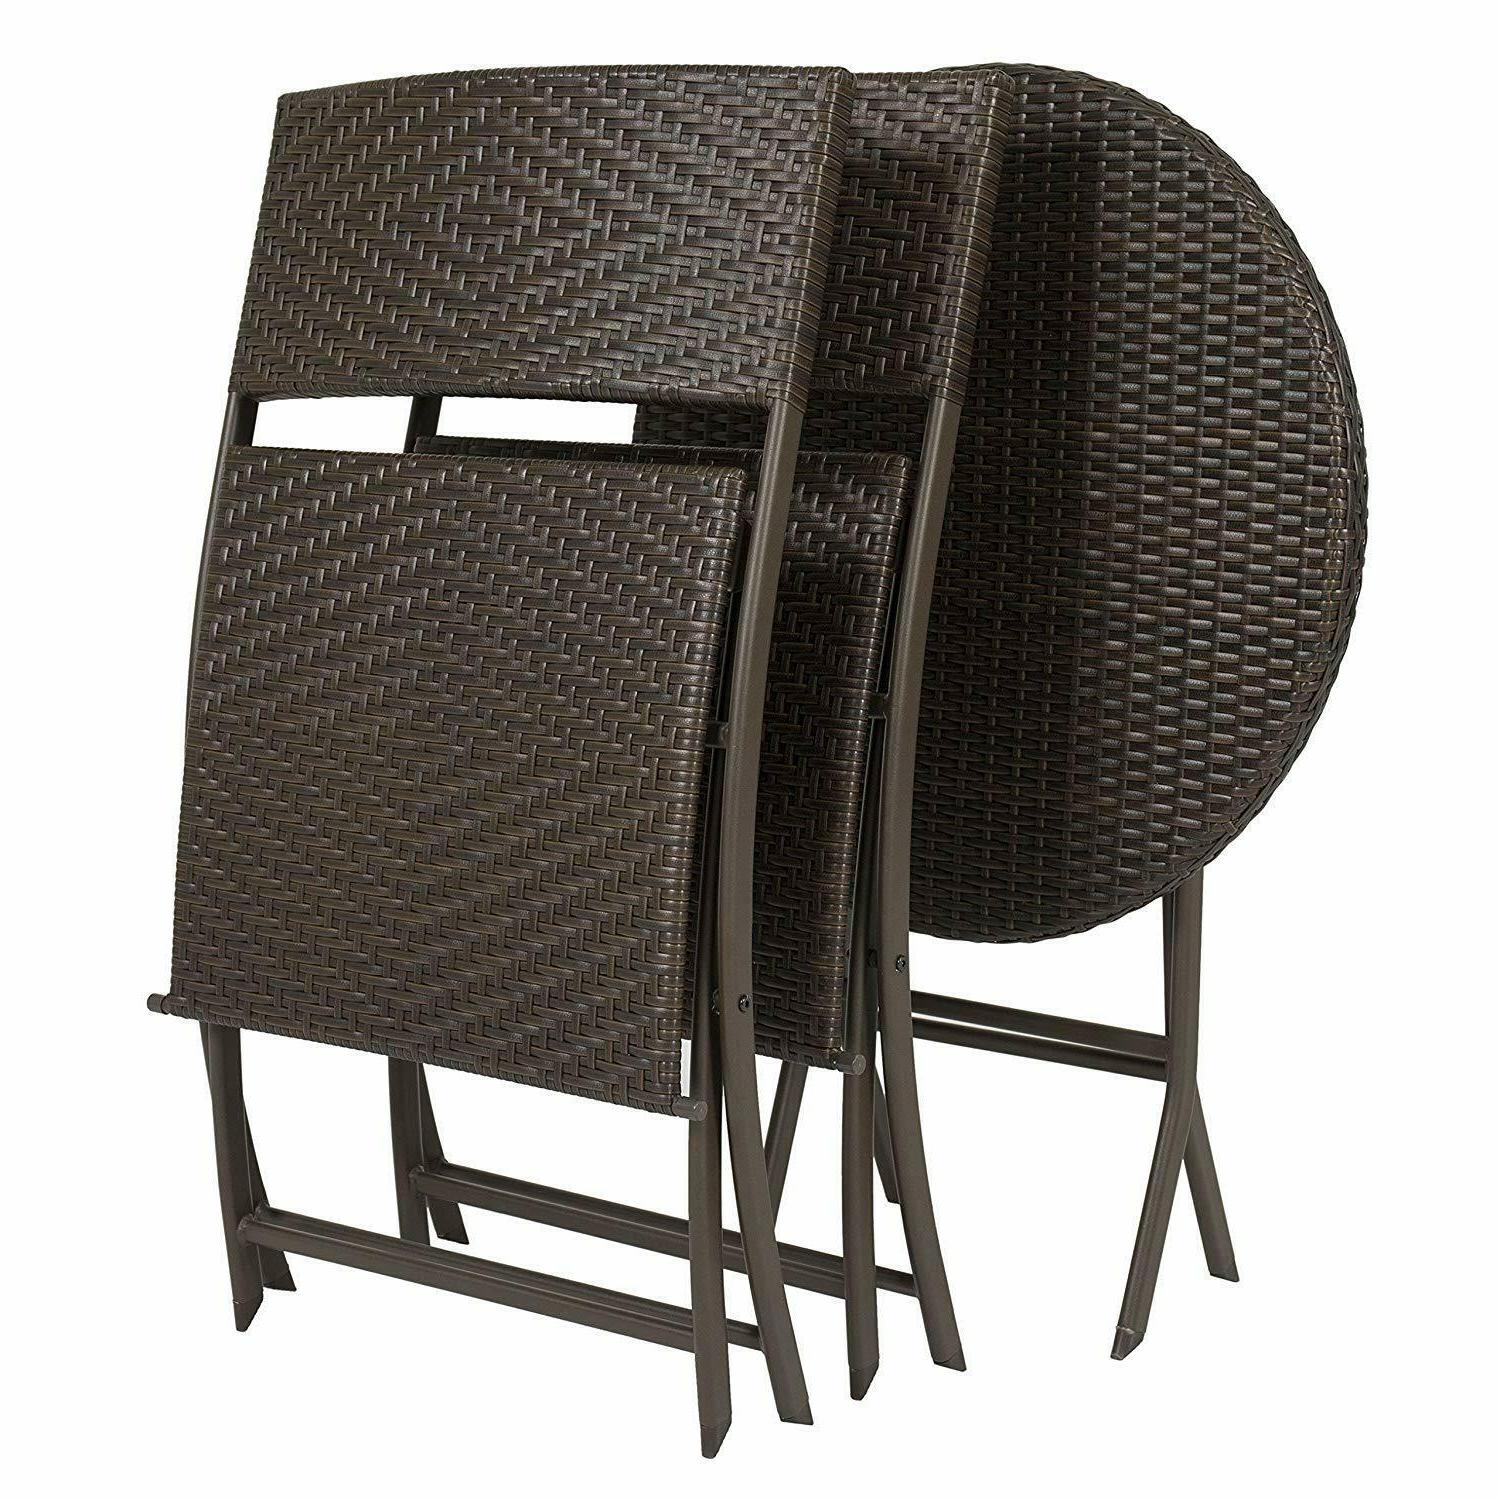 Patio Dining Garden Chairs Round Table